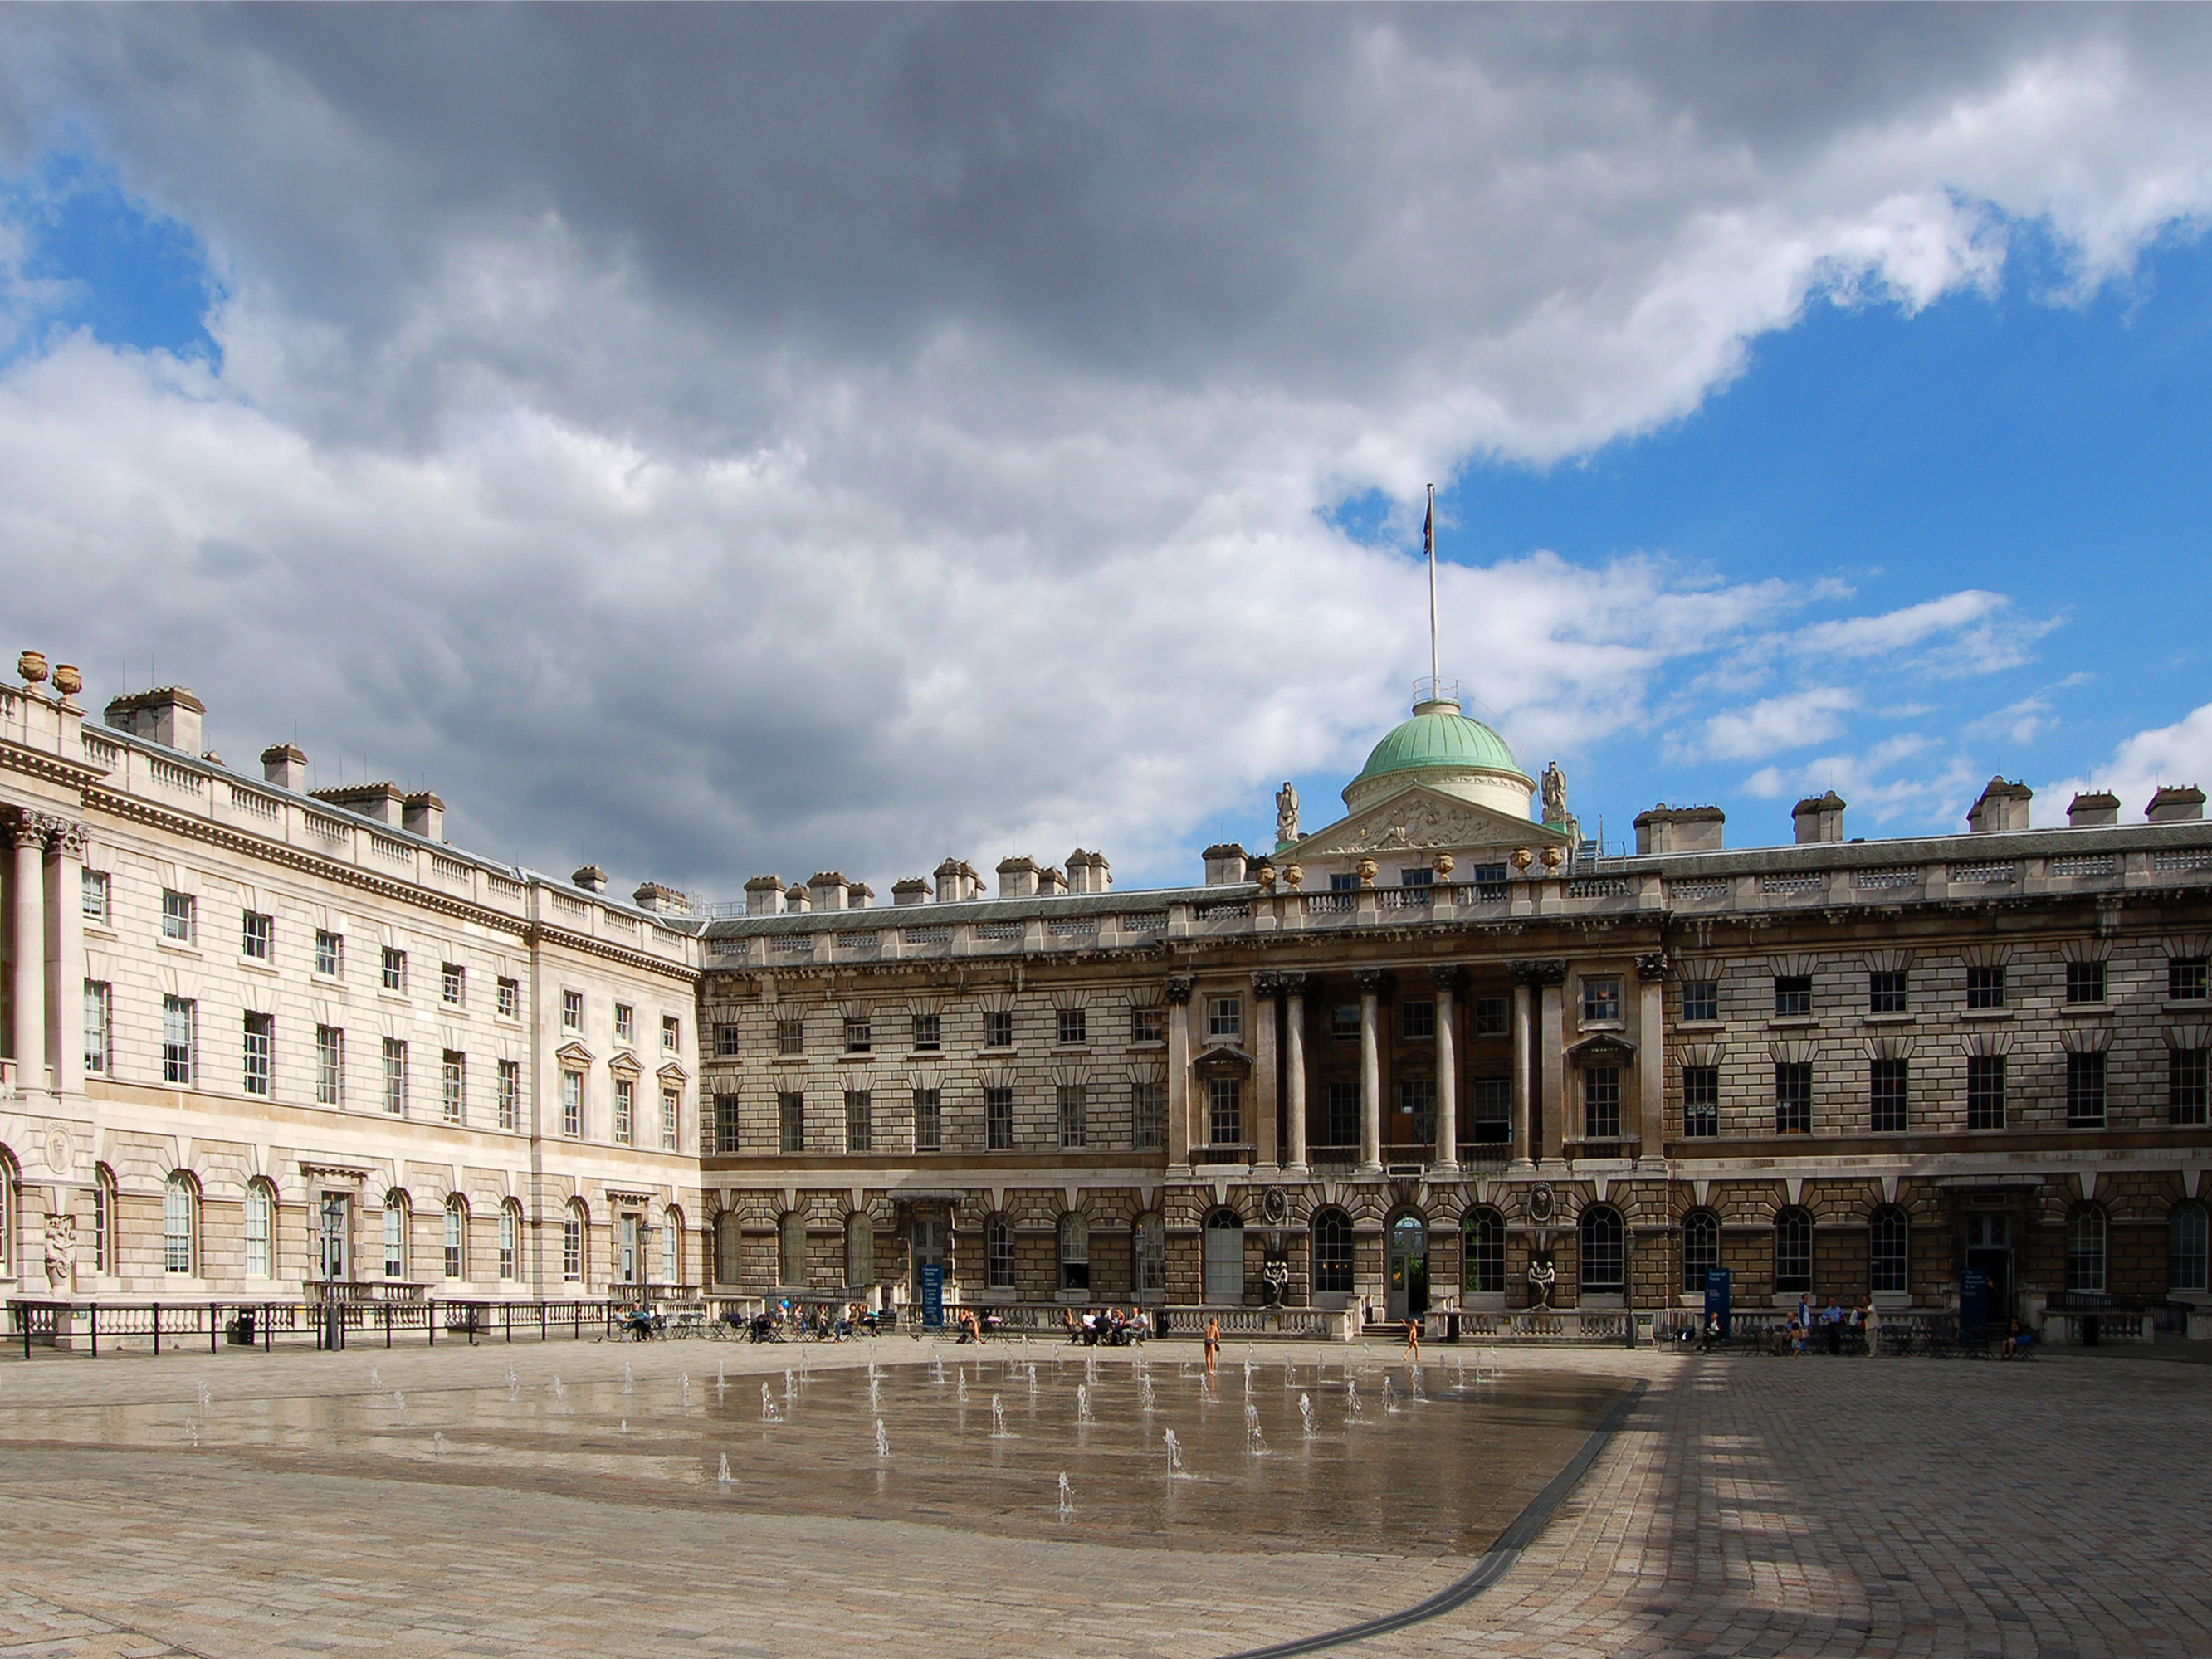 PTSG protects historic Somerset House